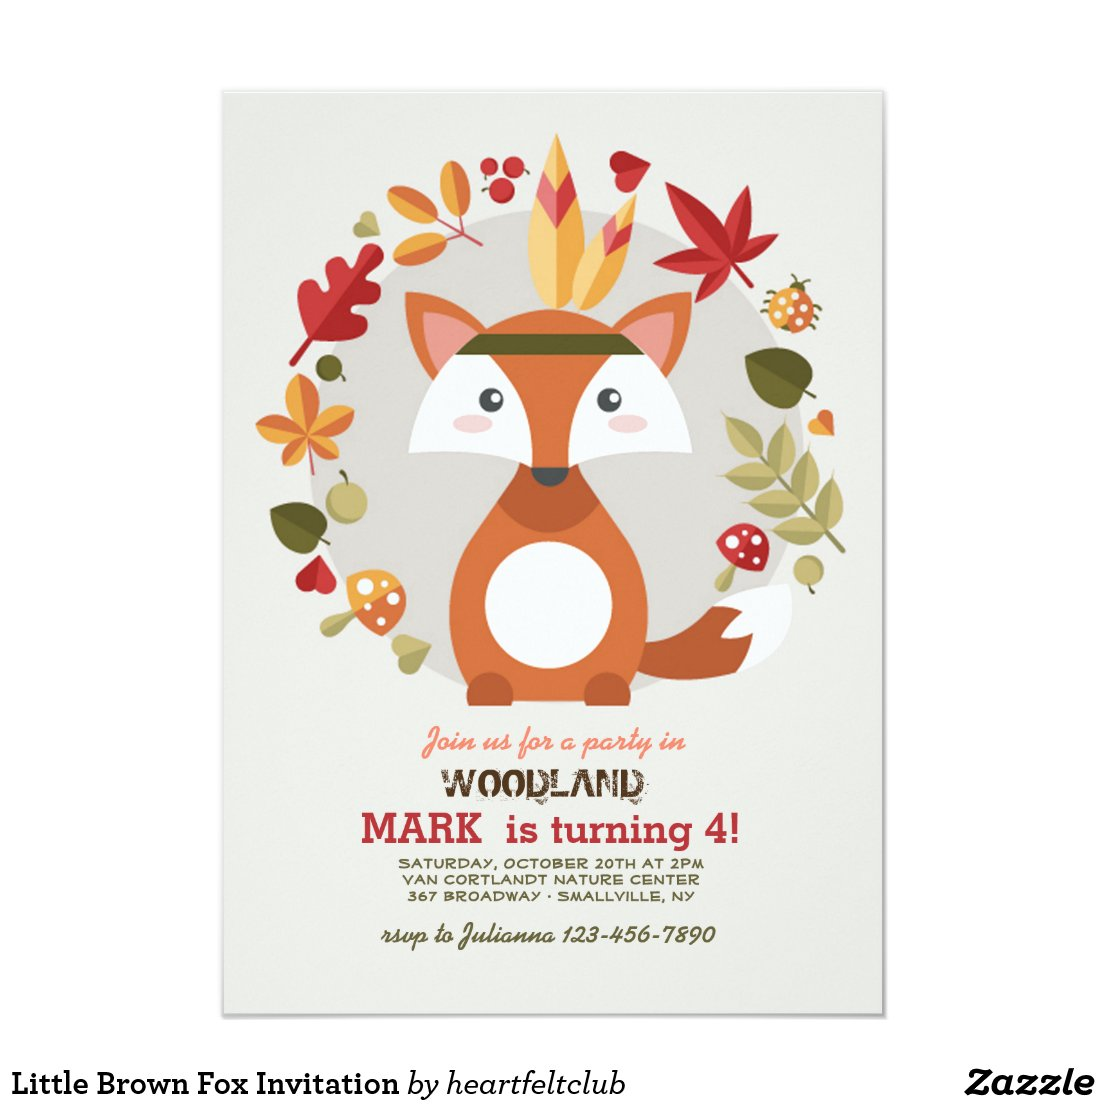 Little Brown Fox Invitation